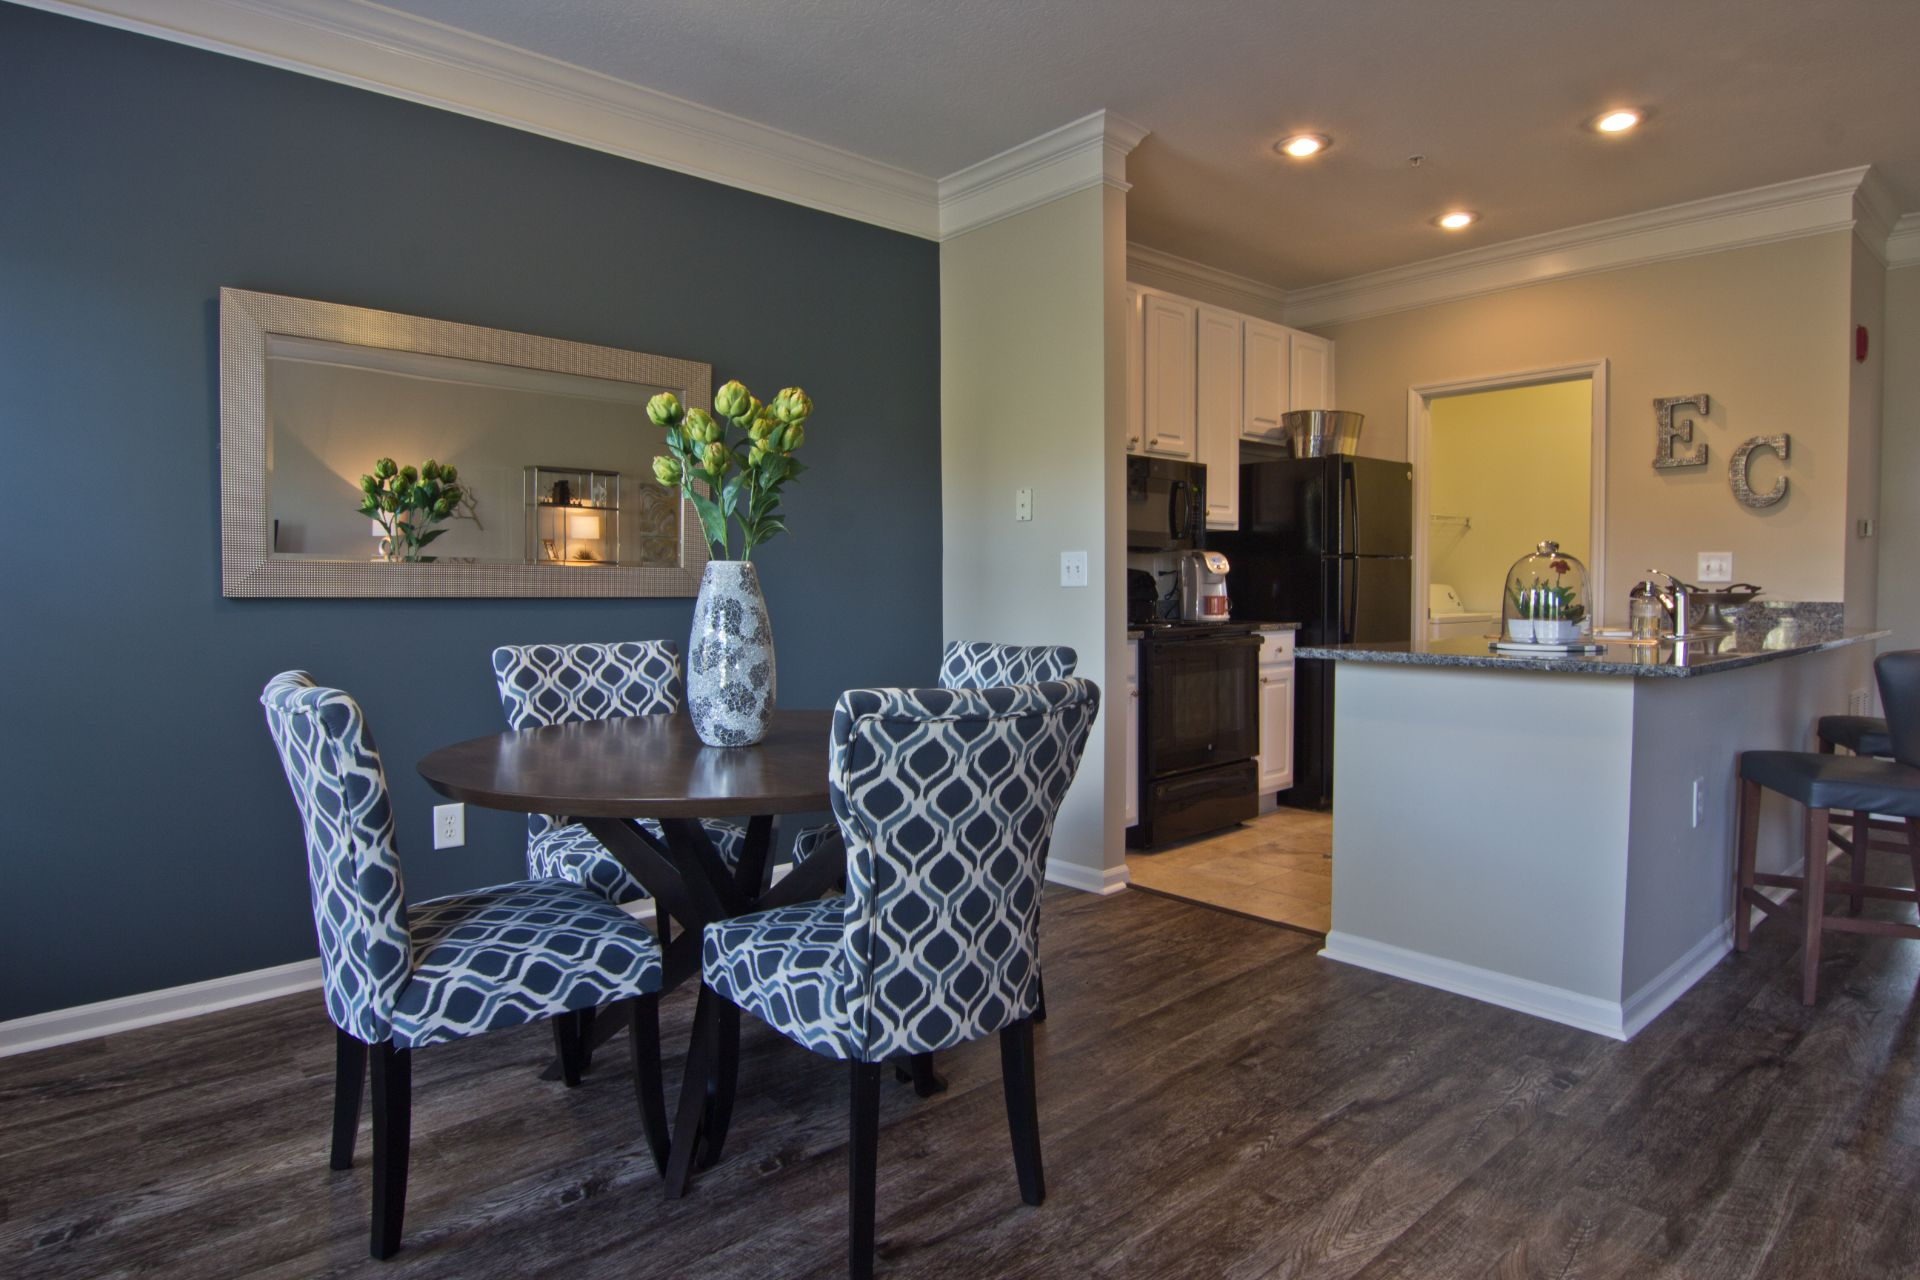 Luxury 1, 2, 3 and 4 Bedroom  Apartments and Townhomes with  Hard Surface Flooring, Dining Space, Open-Concept, Modern Kitchens and Washer-Dryer near Easton Town Center in Columbus OH  4011 Easton Way Columbus OH 43219 Easton Commons